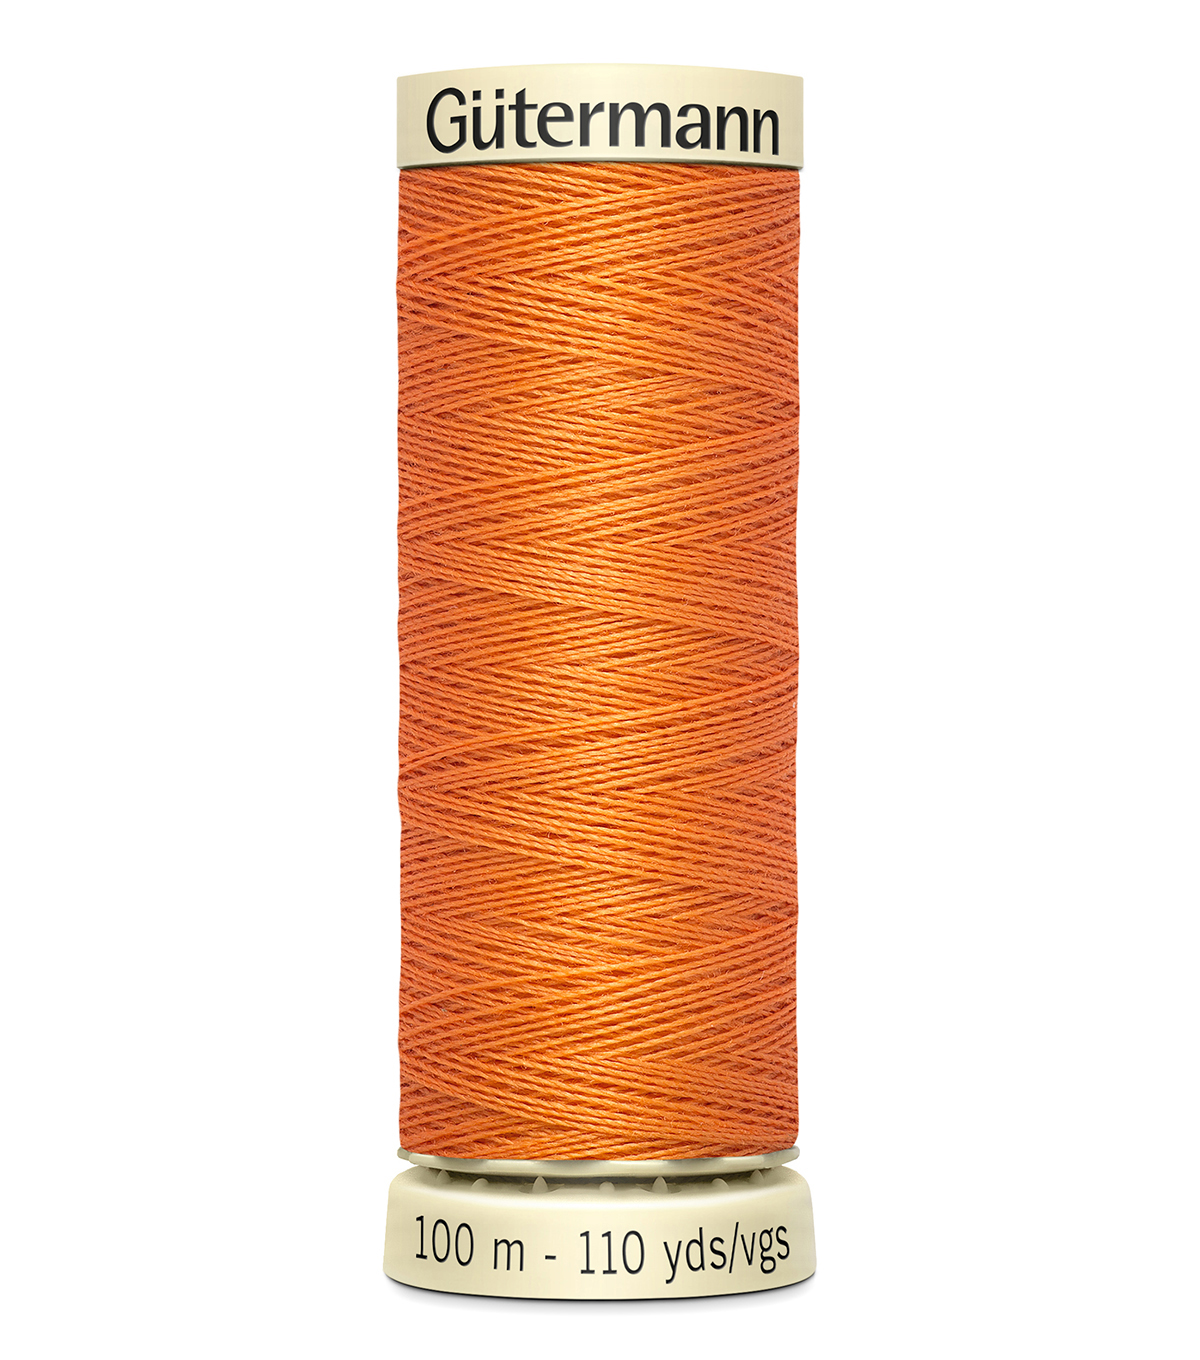 Gutermann Sew All Polyester Thread 110 Yards-Oranges & Yellows , Apricot #460